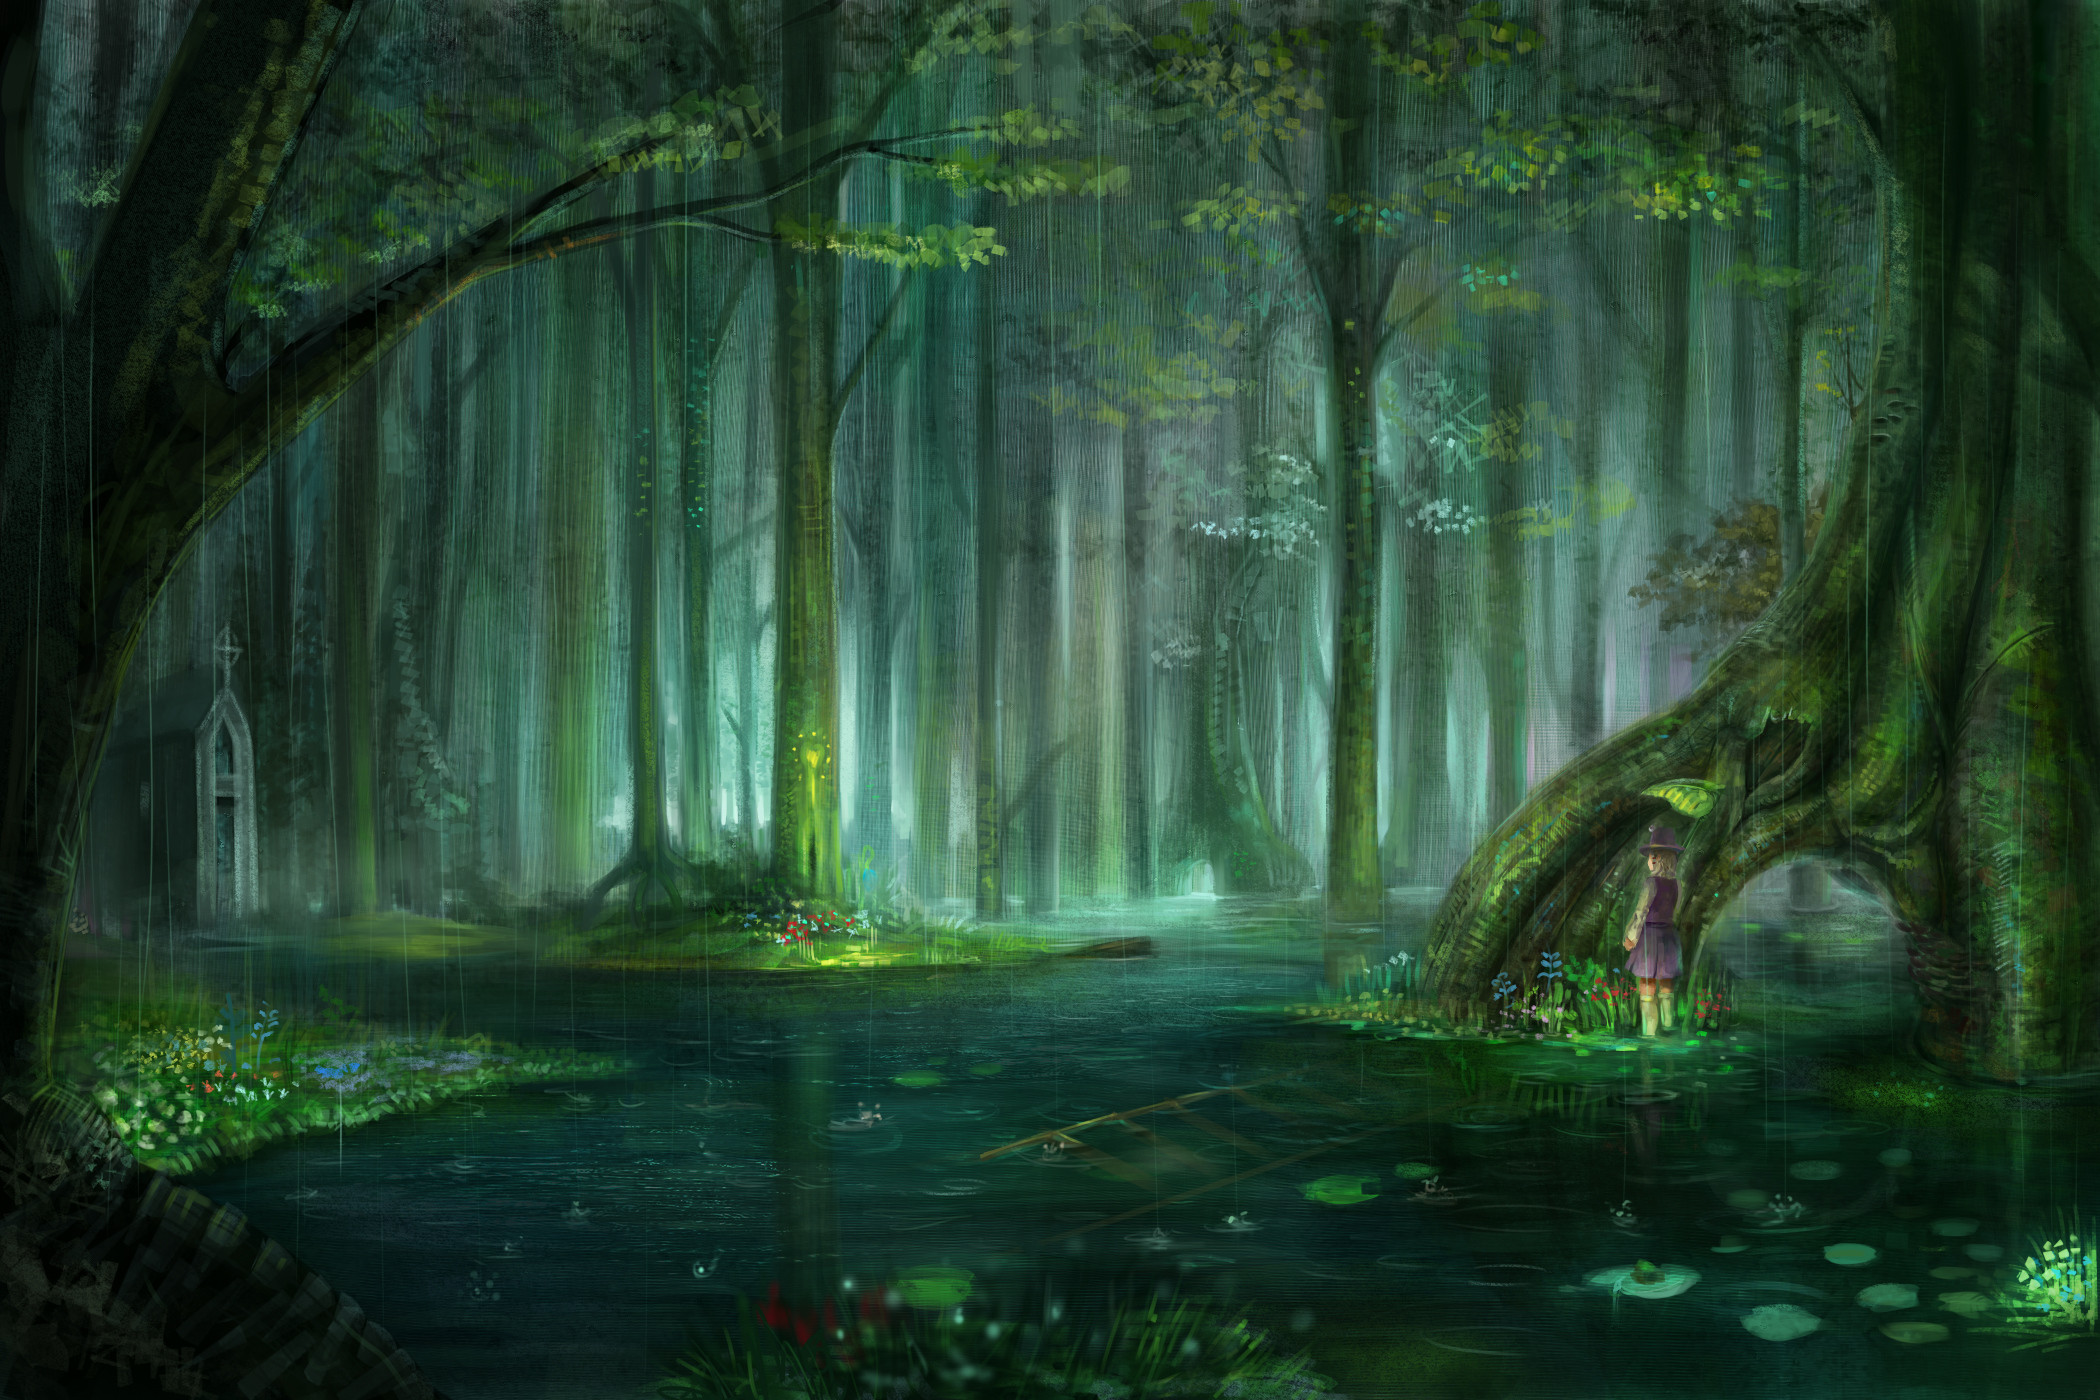 Blondes water landscapes nature touhou trees rain flowers forest leaves  pond plants short hair scenic moriya suwako chapel anime raindrops l.